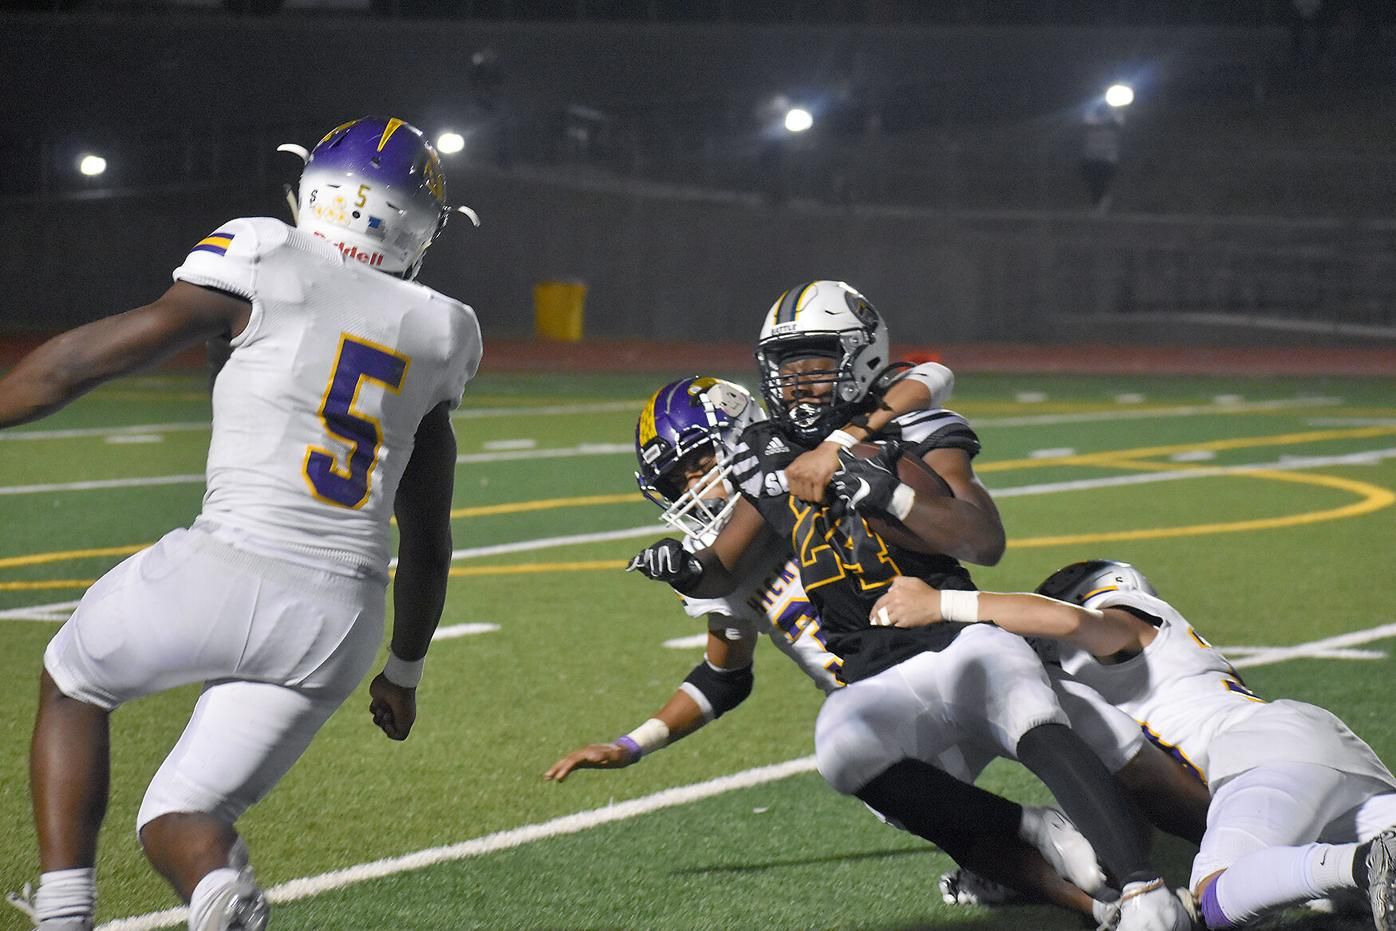 Battle senior Tre Richardson is tackled with the